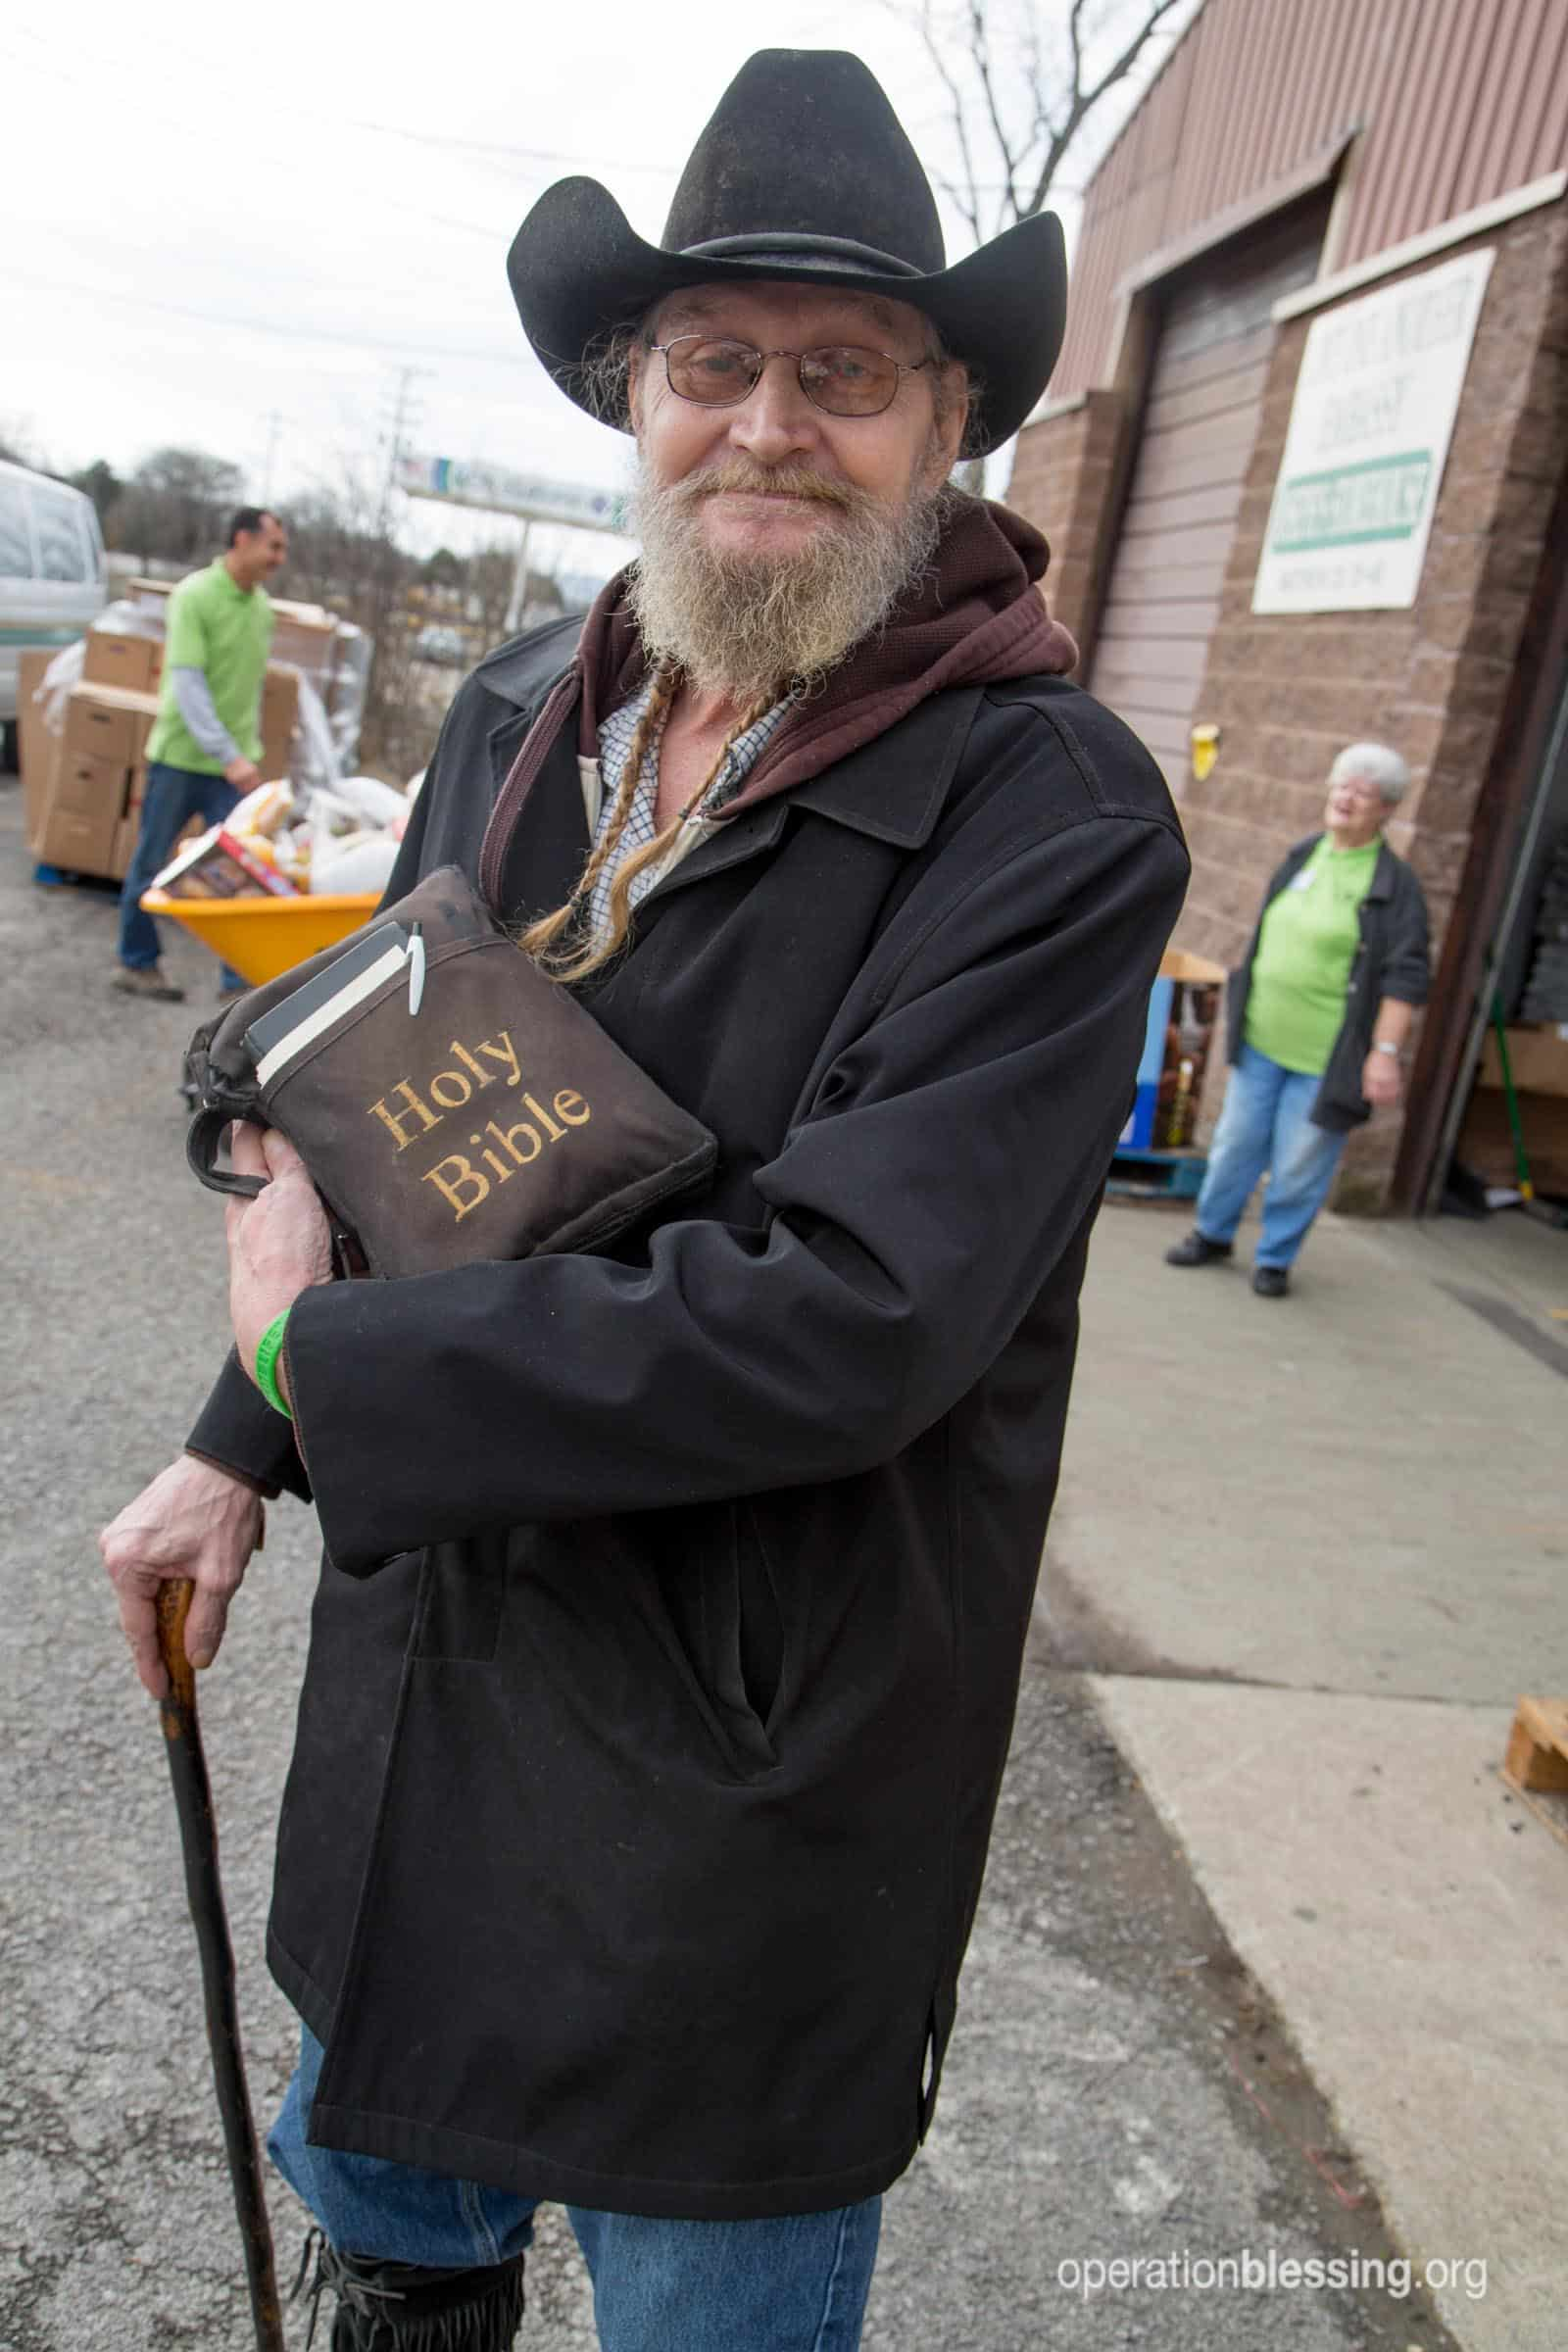 James, a Vietnam veteran, stands with his Bible at Joseph's Storehouse.